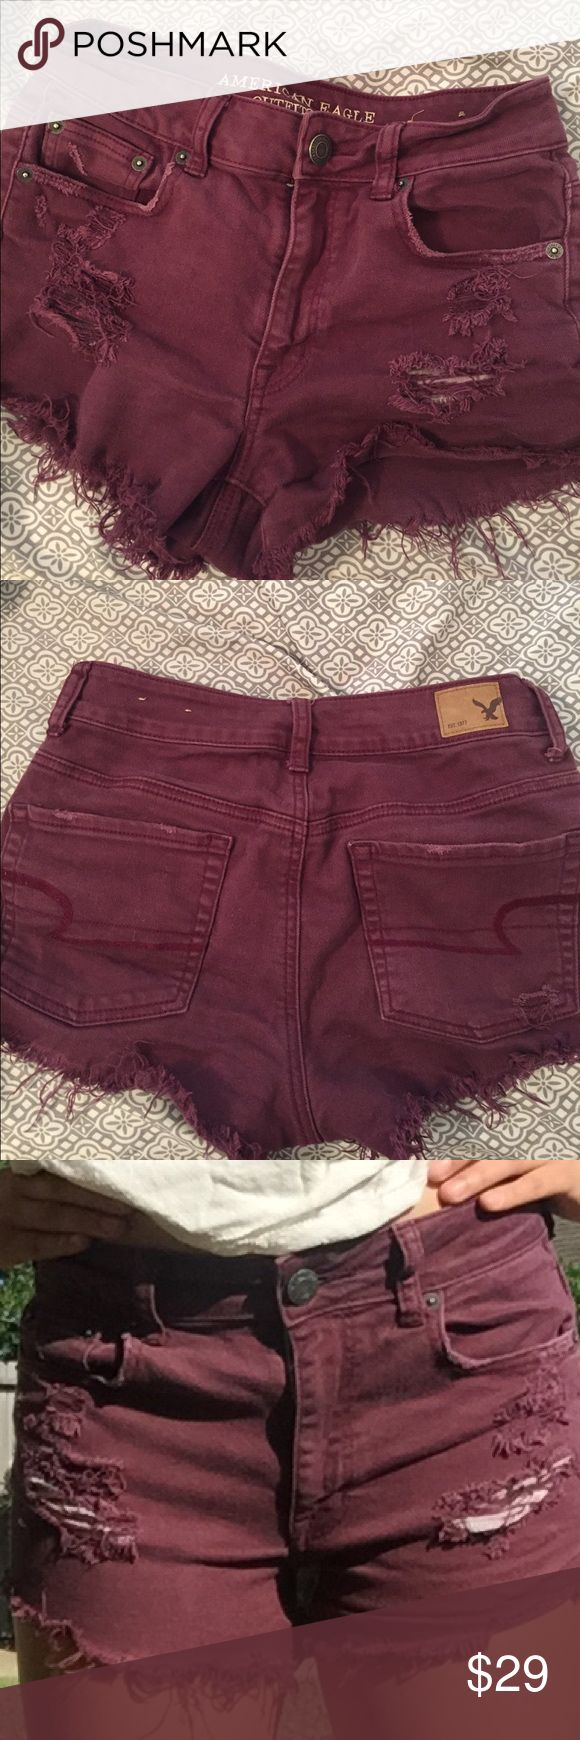 American eagle distressed maroon shorts Size 2! Super cute and comfy maroon shorts. Also great for summer ! American Eagle Outfitters Shorts